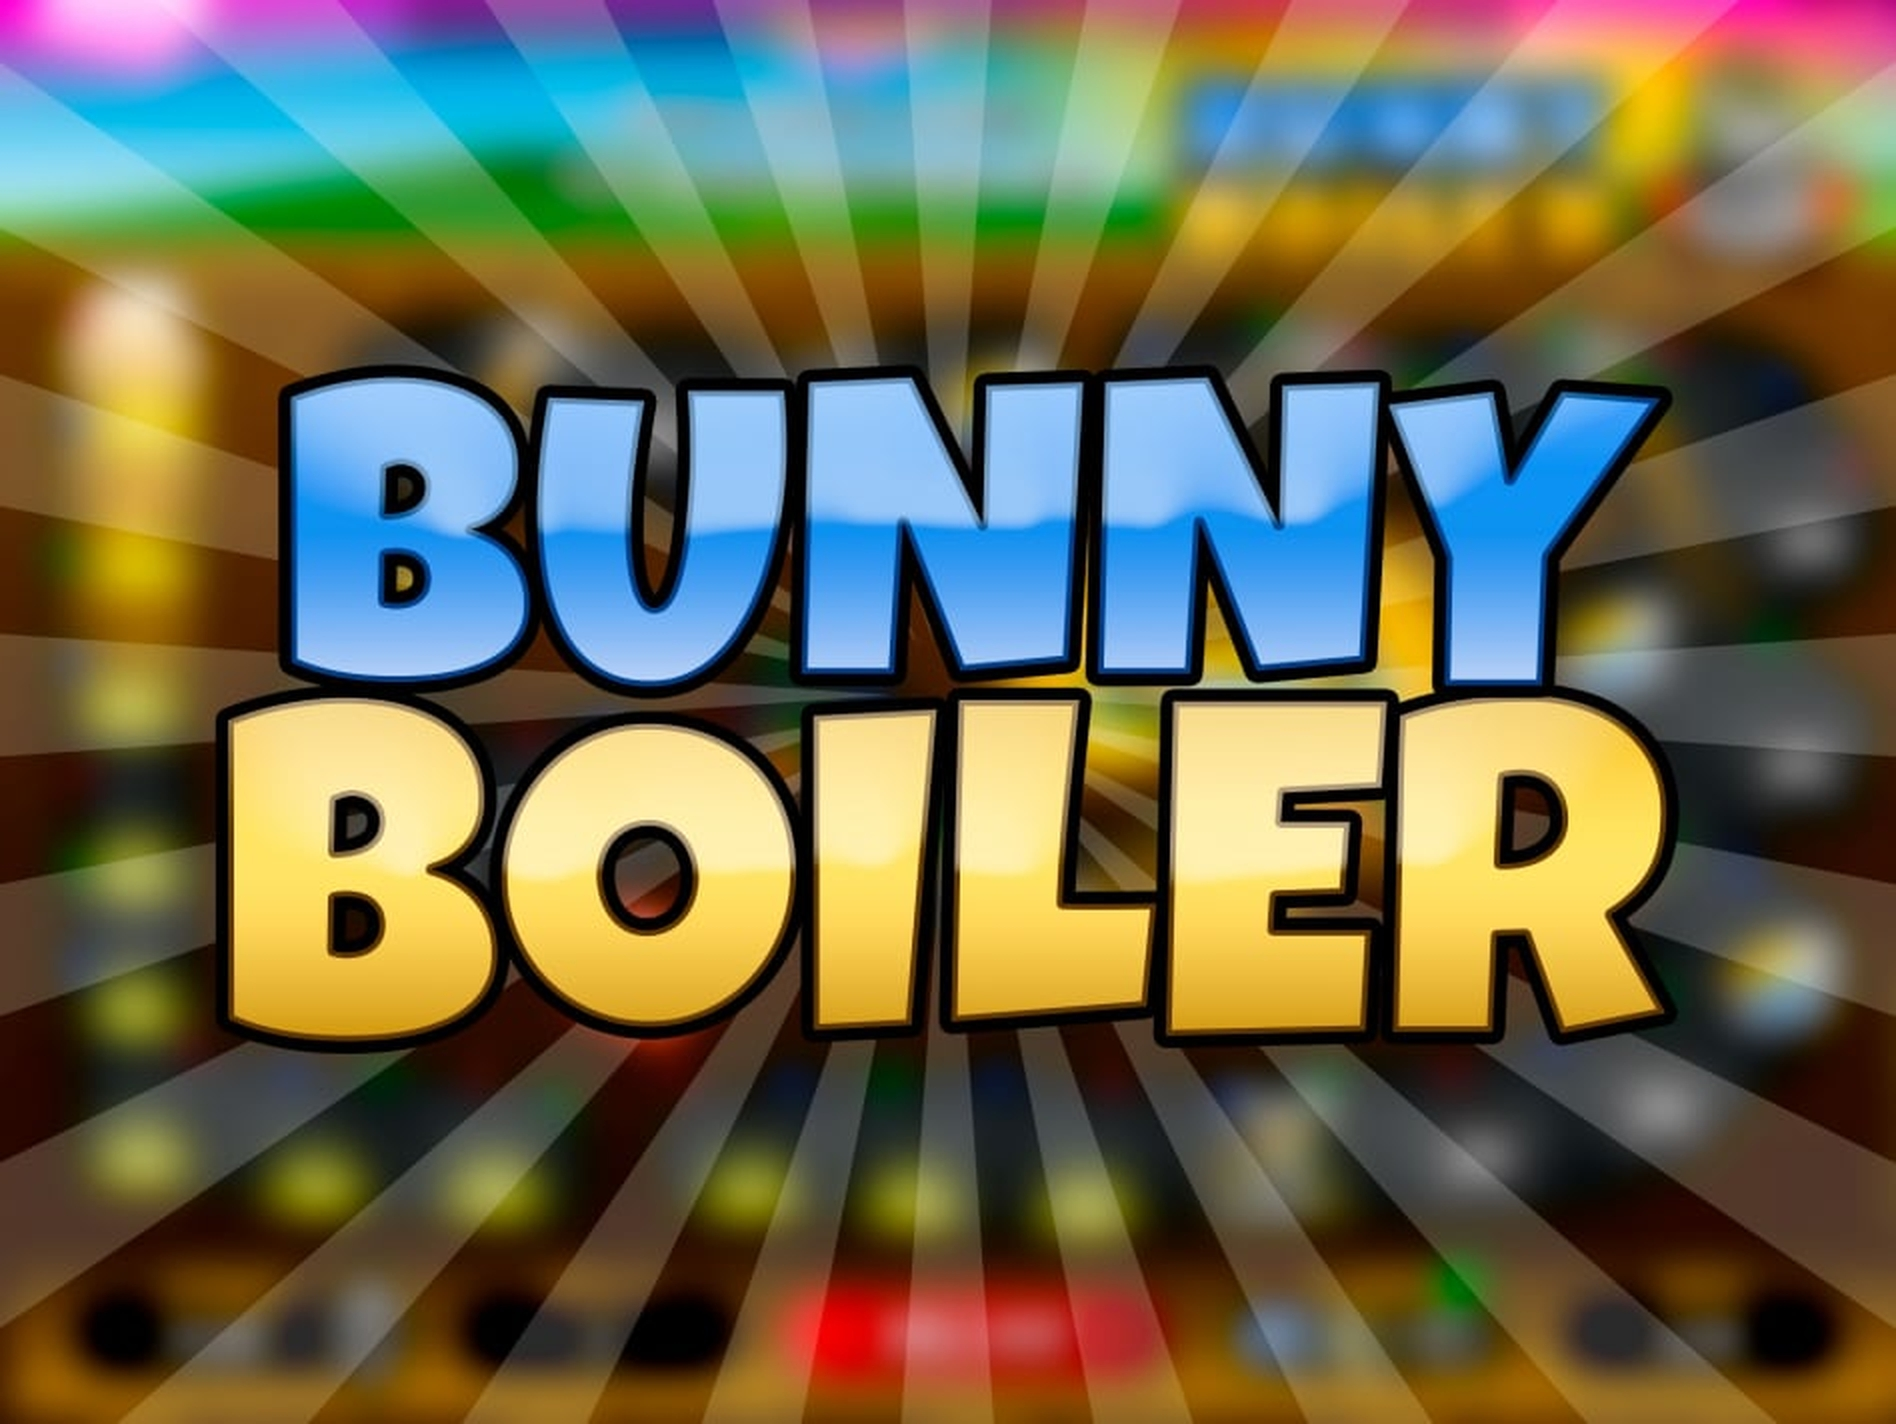 The Bunny Boiler Online Slot Demo Game by Microgaming